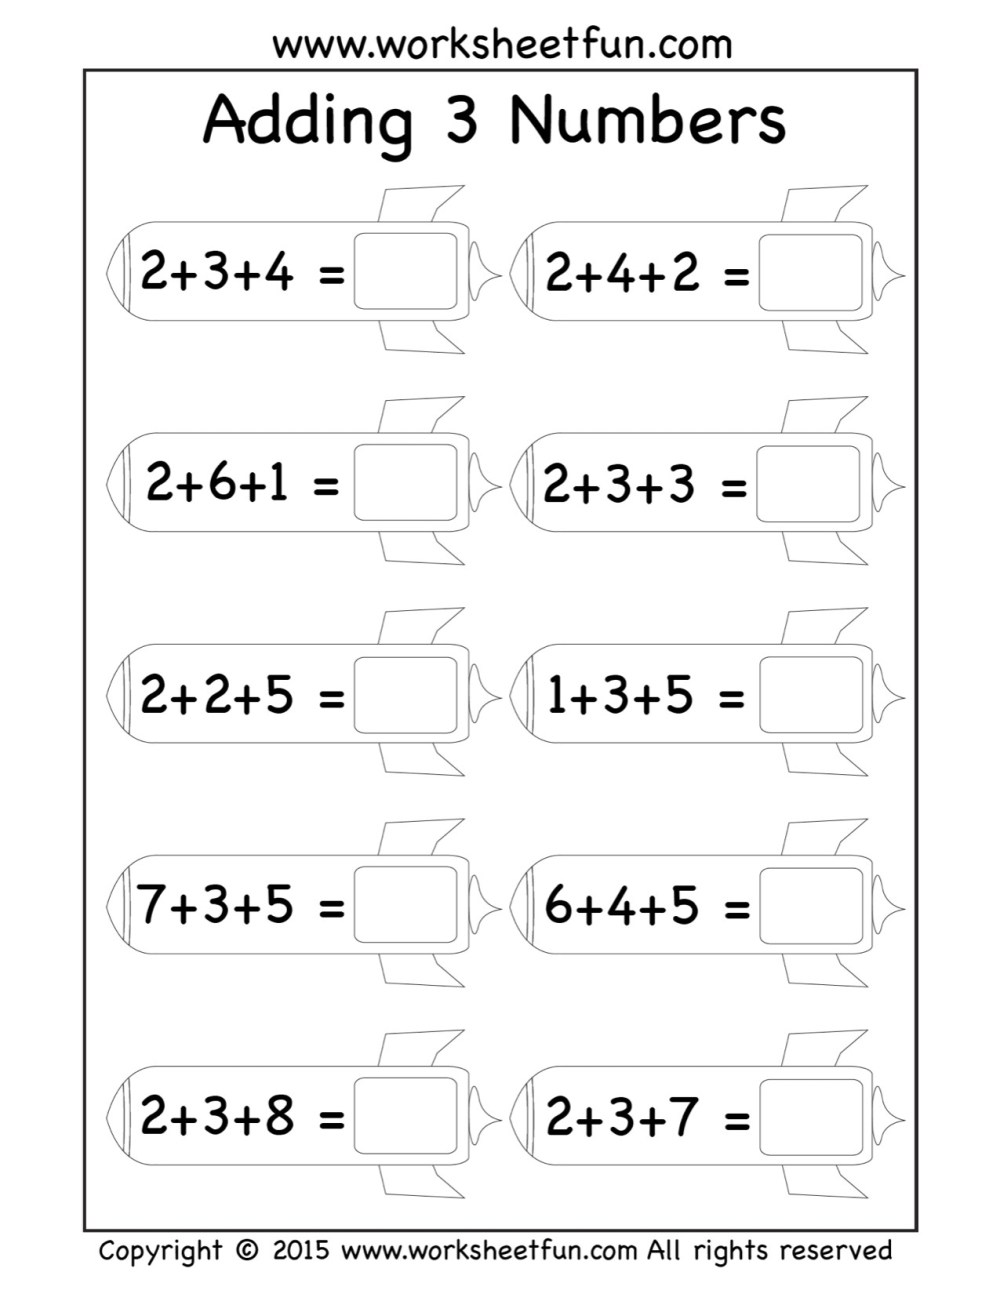 medium resolution of 5 Free Math Worksheets First Grade 1 Addition Add 2 Digit 1 Digit Numbers  Missing Addend No Regrouping - apocalomegaproductions.com